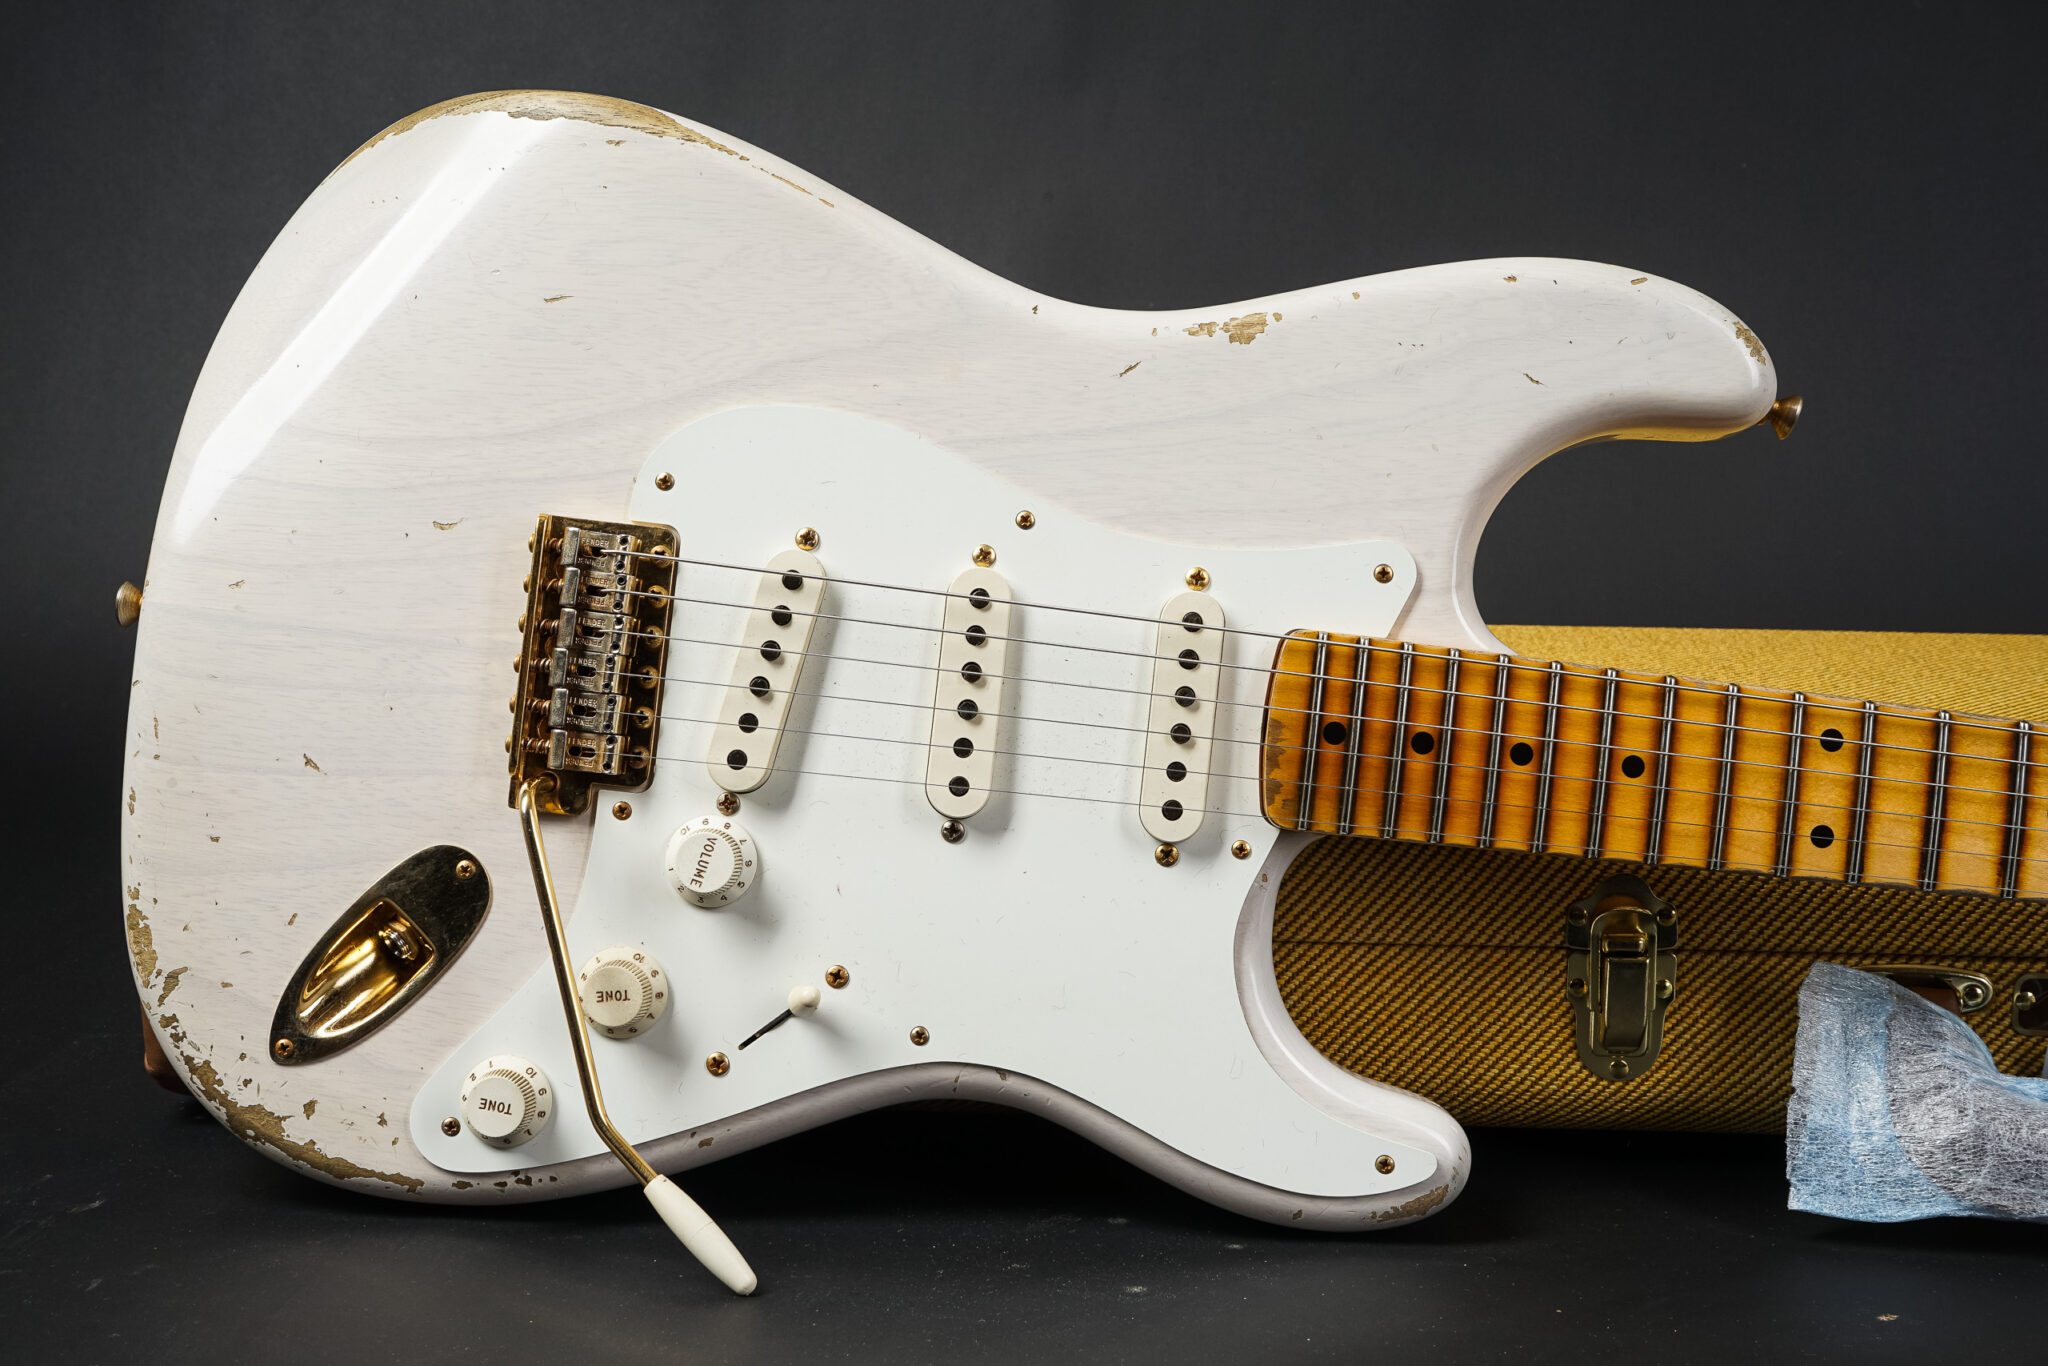 https://guitarpoint.de/app/uploads/products/2021-fender-ron-thorn-masterbuilt-1955-stratocaster-mary-kaye-blond/2021-1955-Fender-Stratocaster-MBRT-Mary-Kaye-9-2048x1366.jpg